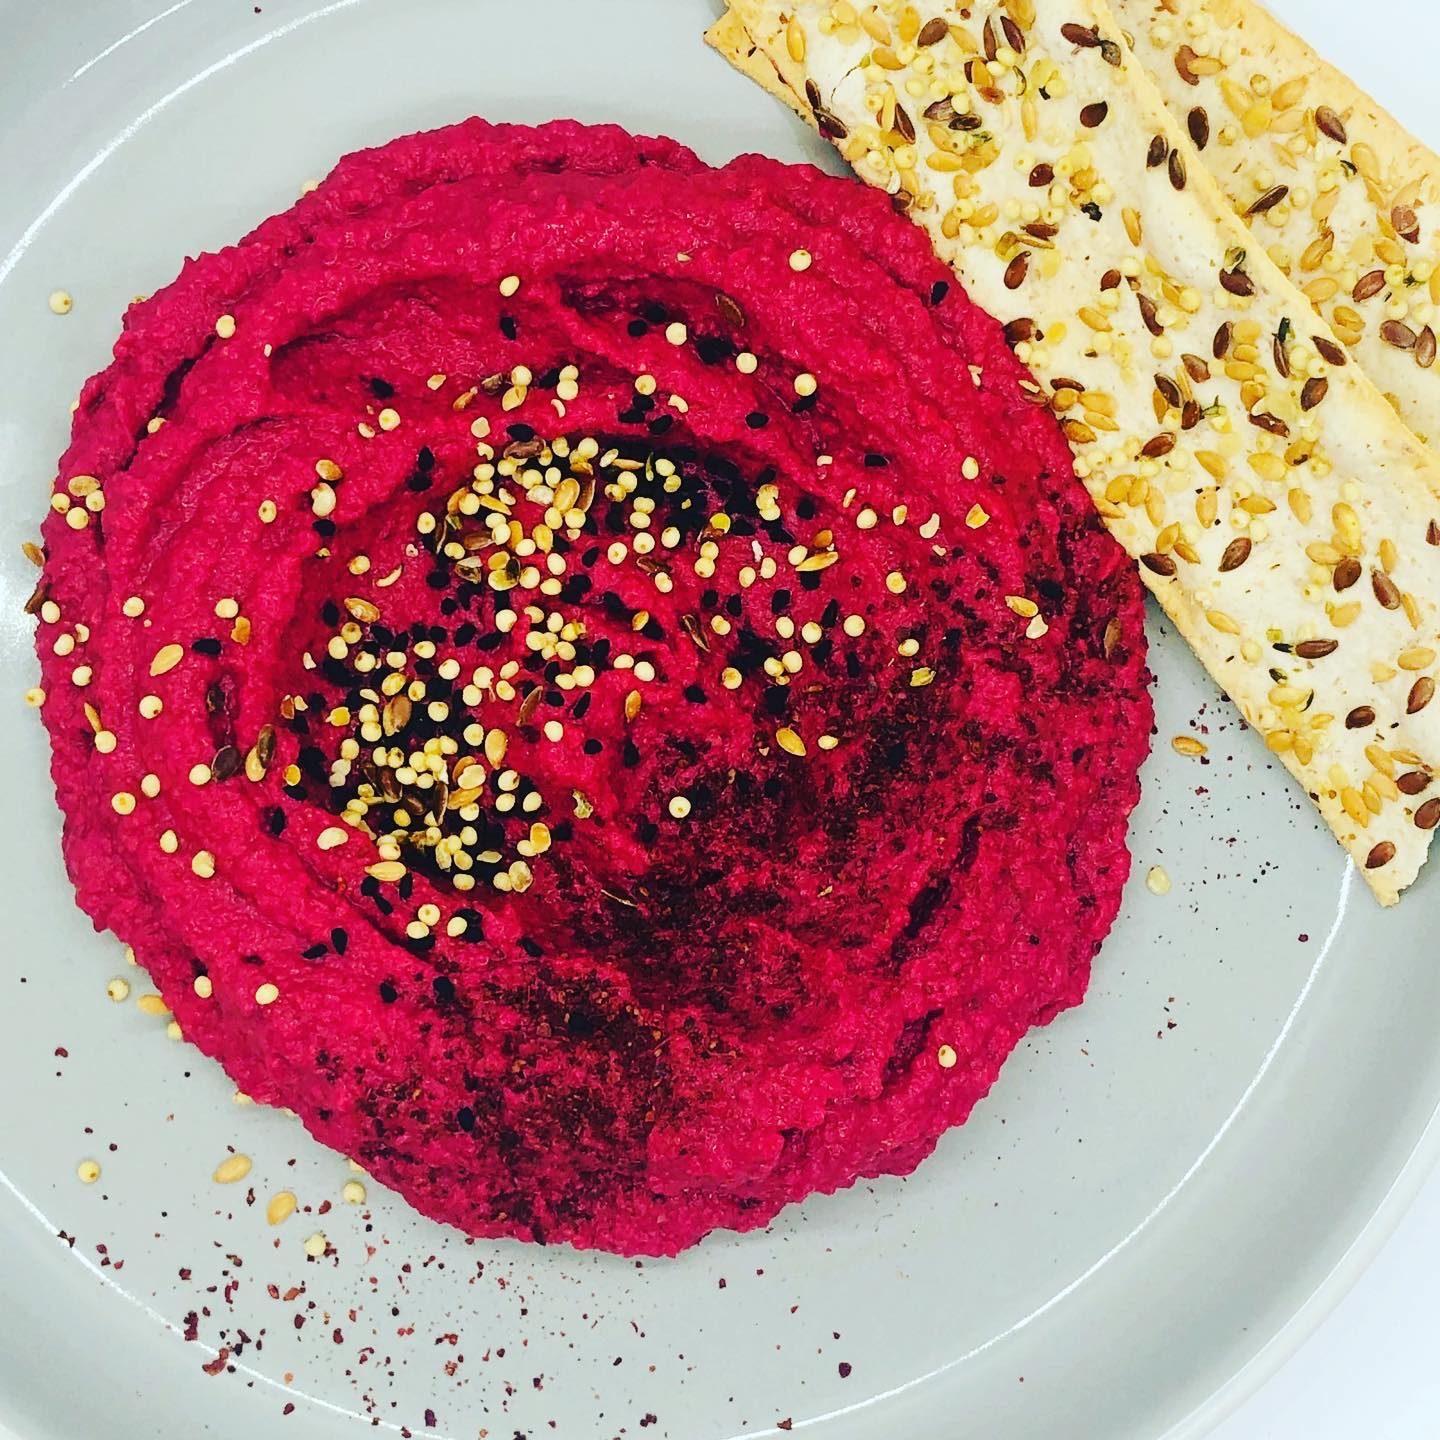 5-Minute Creamy Beetroot Hummus